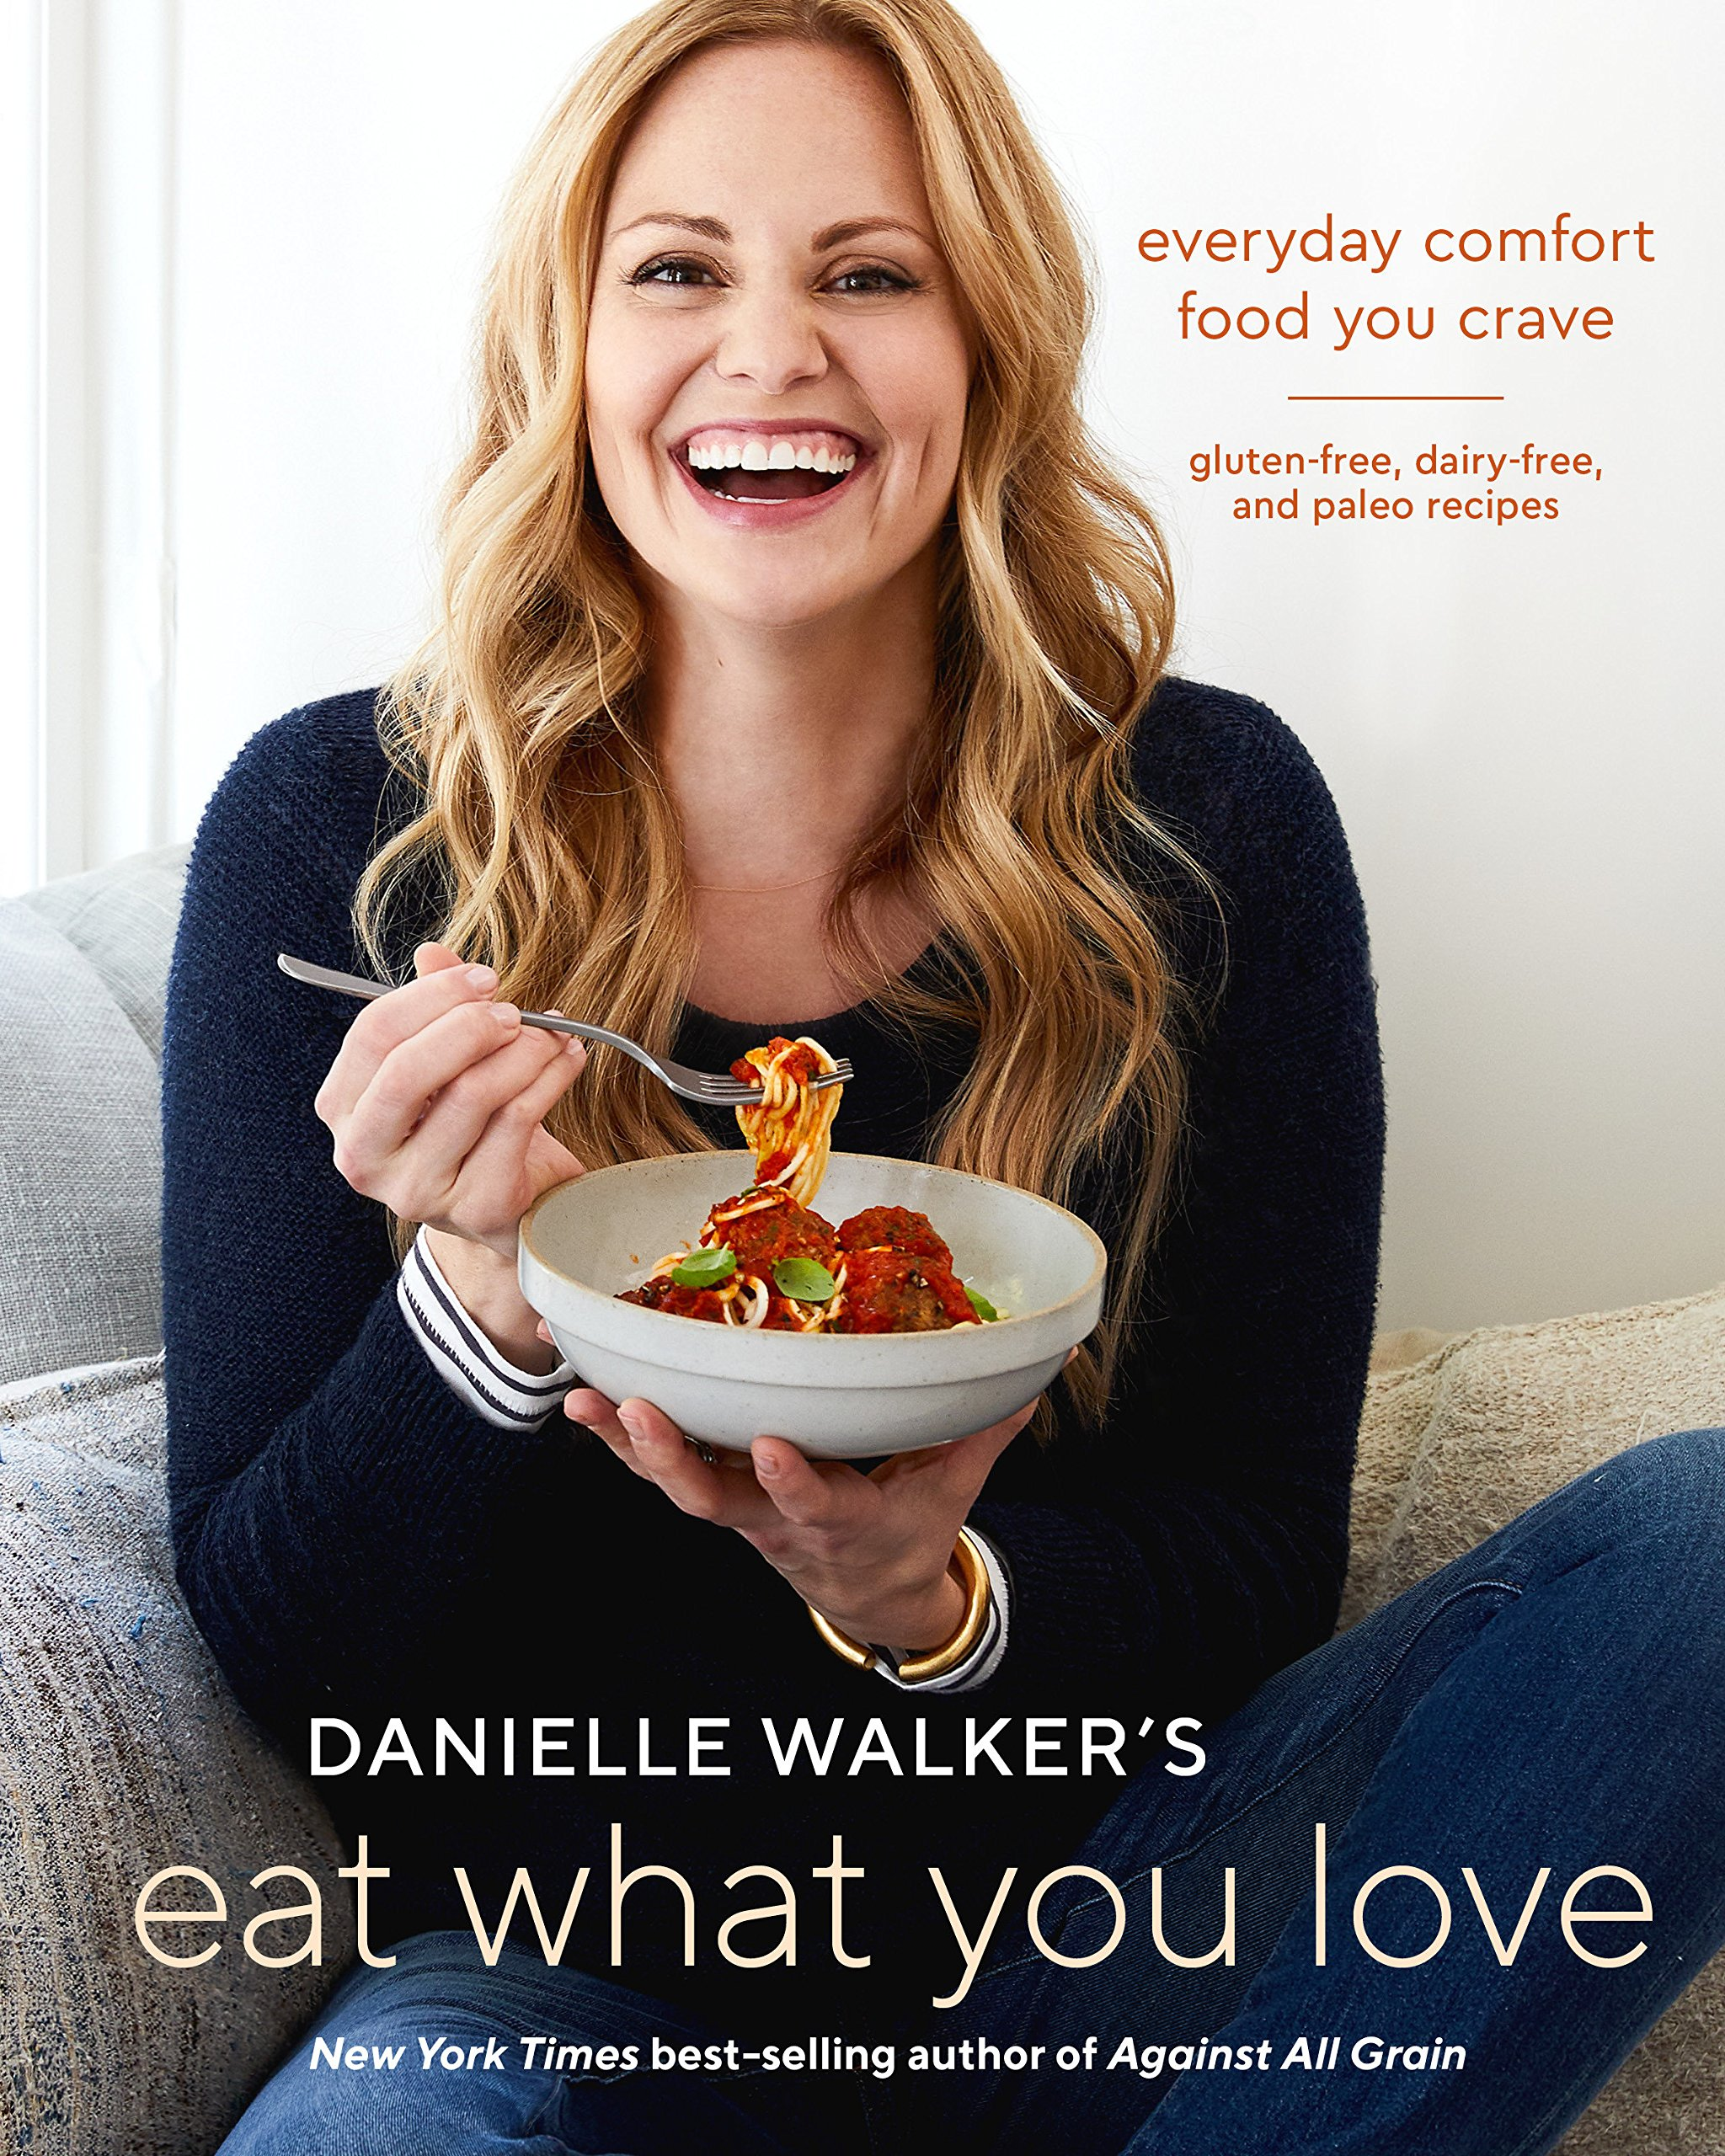 Danielle Walker's Eat What You Love: Everyday Comfort Food You Crave; Gluten-Free, Dairy-Free, and Paleo Recipes [A Cookbook] by Ten Speed Press